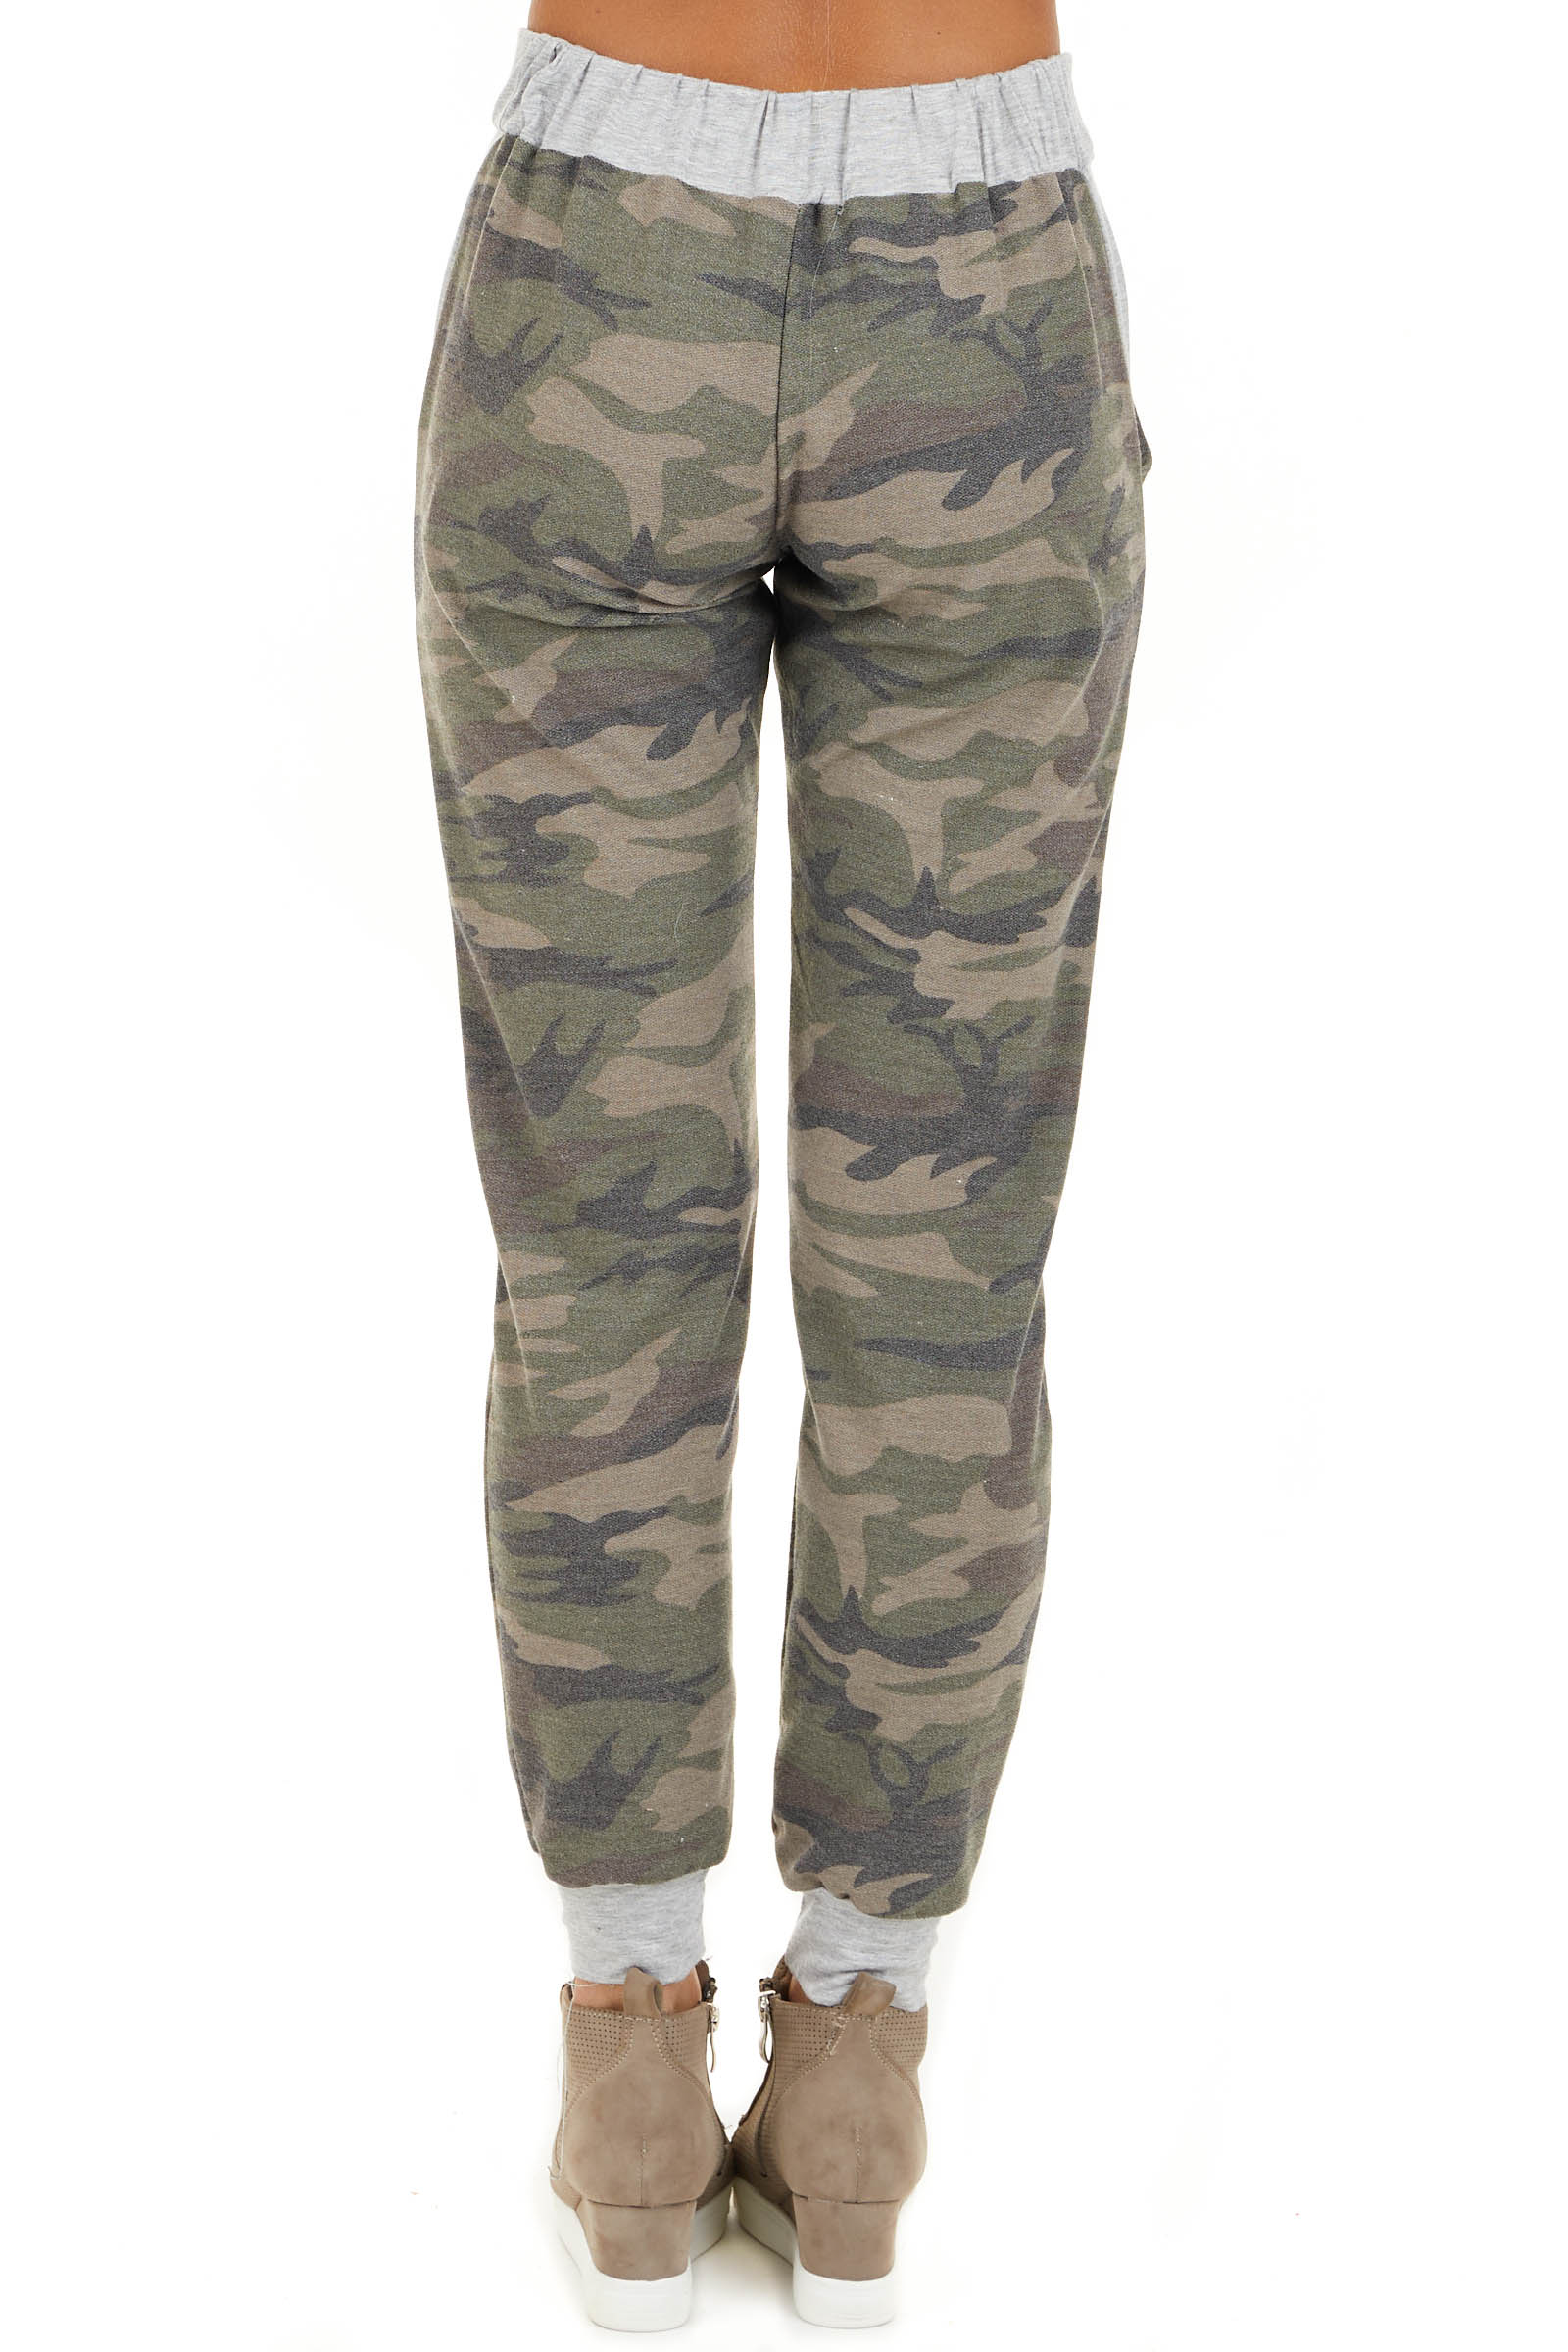 Olive Camo Print Jogger Pants with Drawstring and Pockets back view